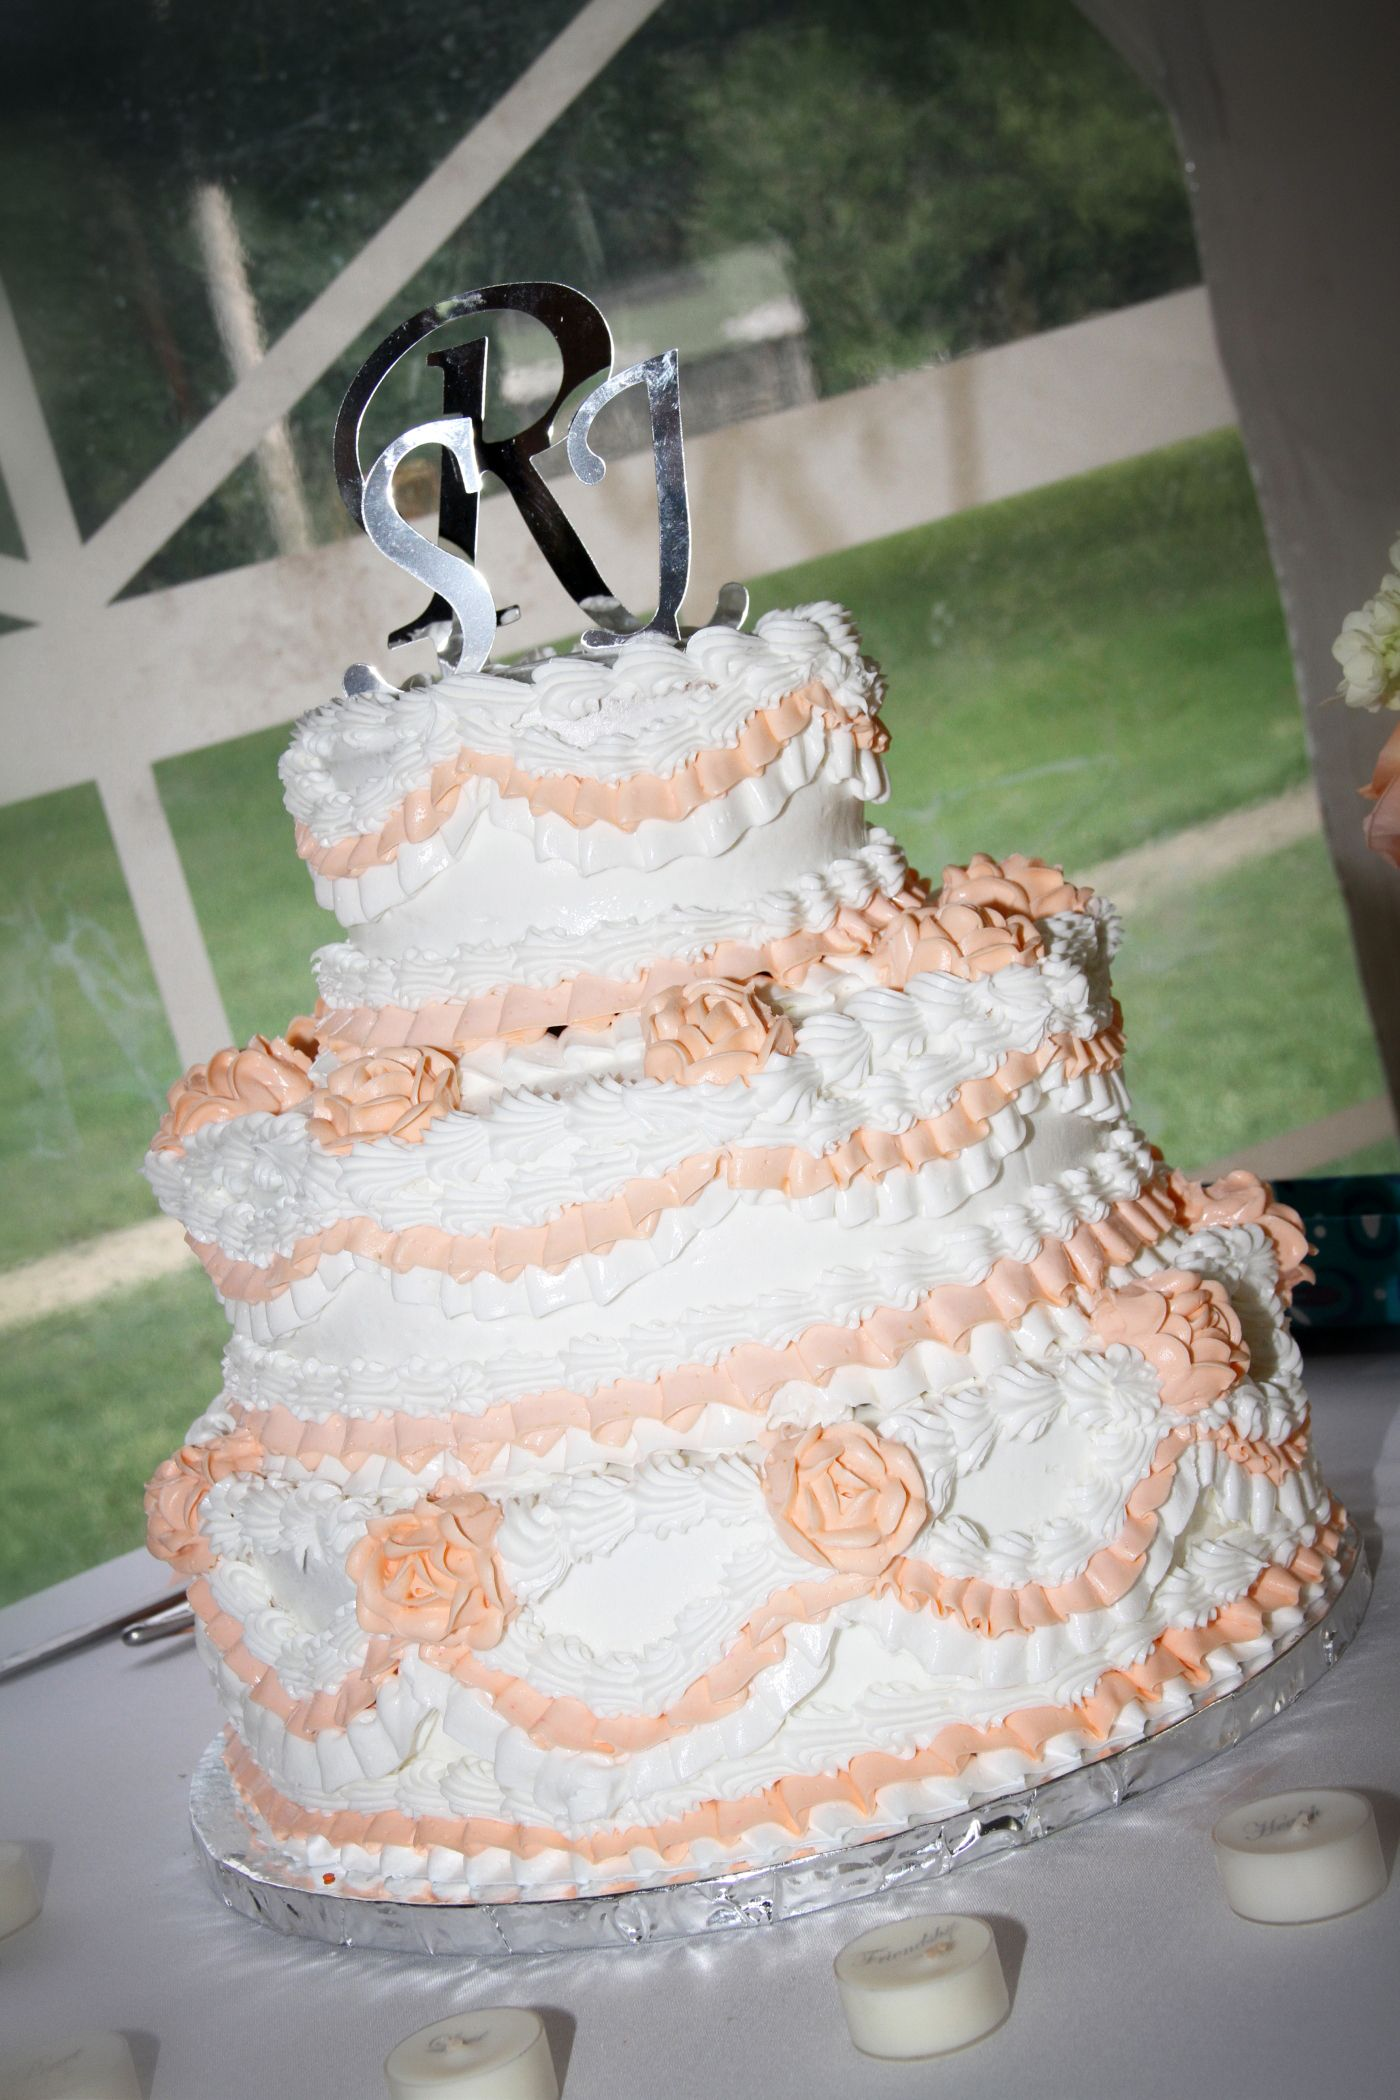 3tiered wedding cake from super walmart only 100